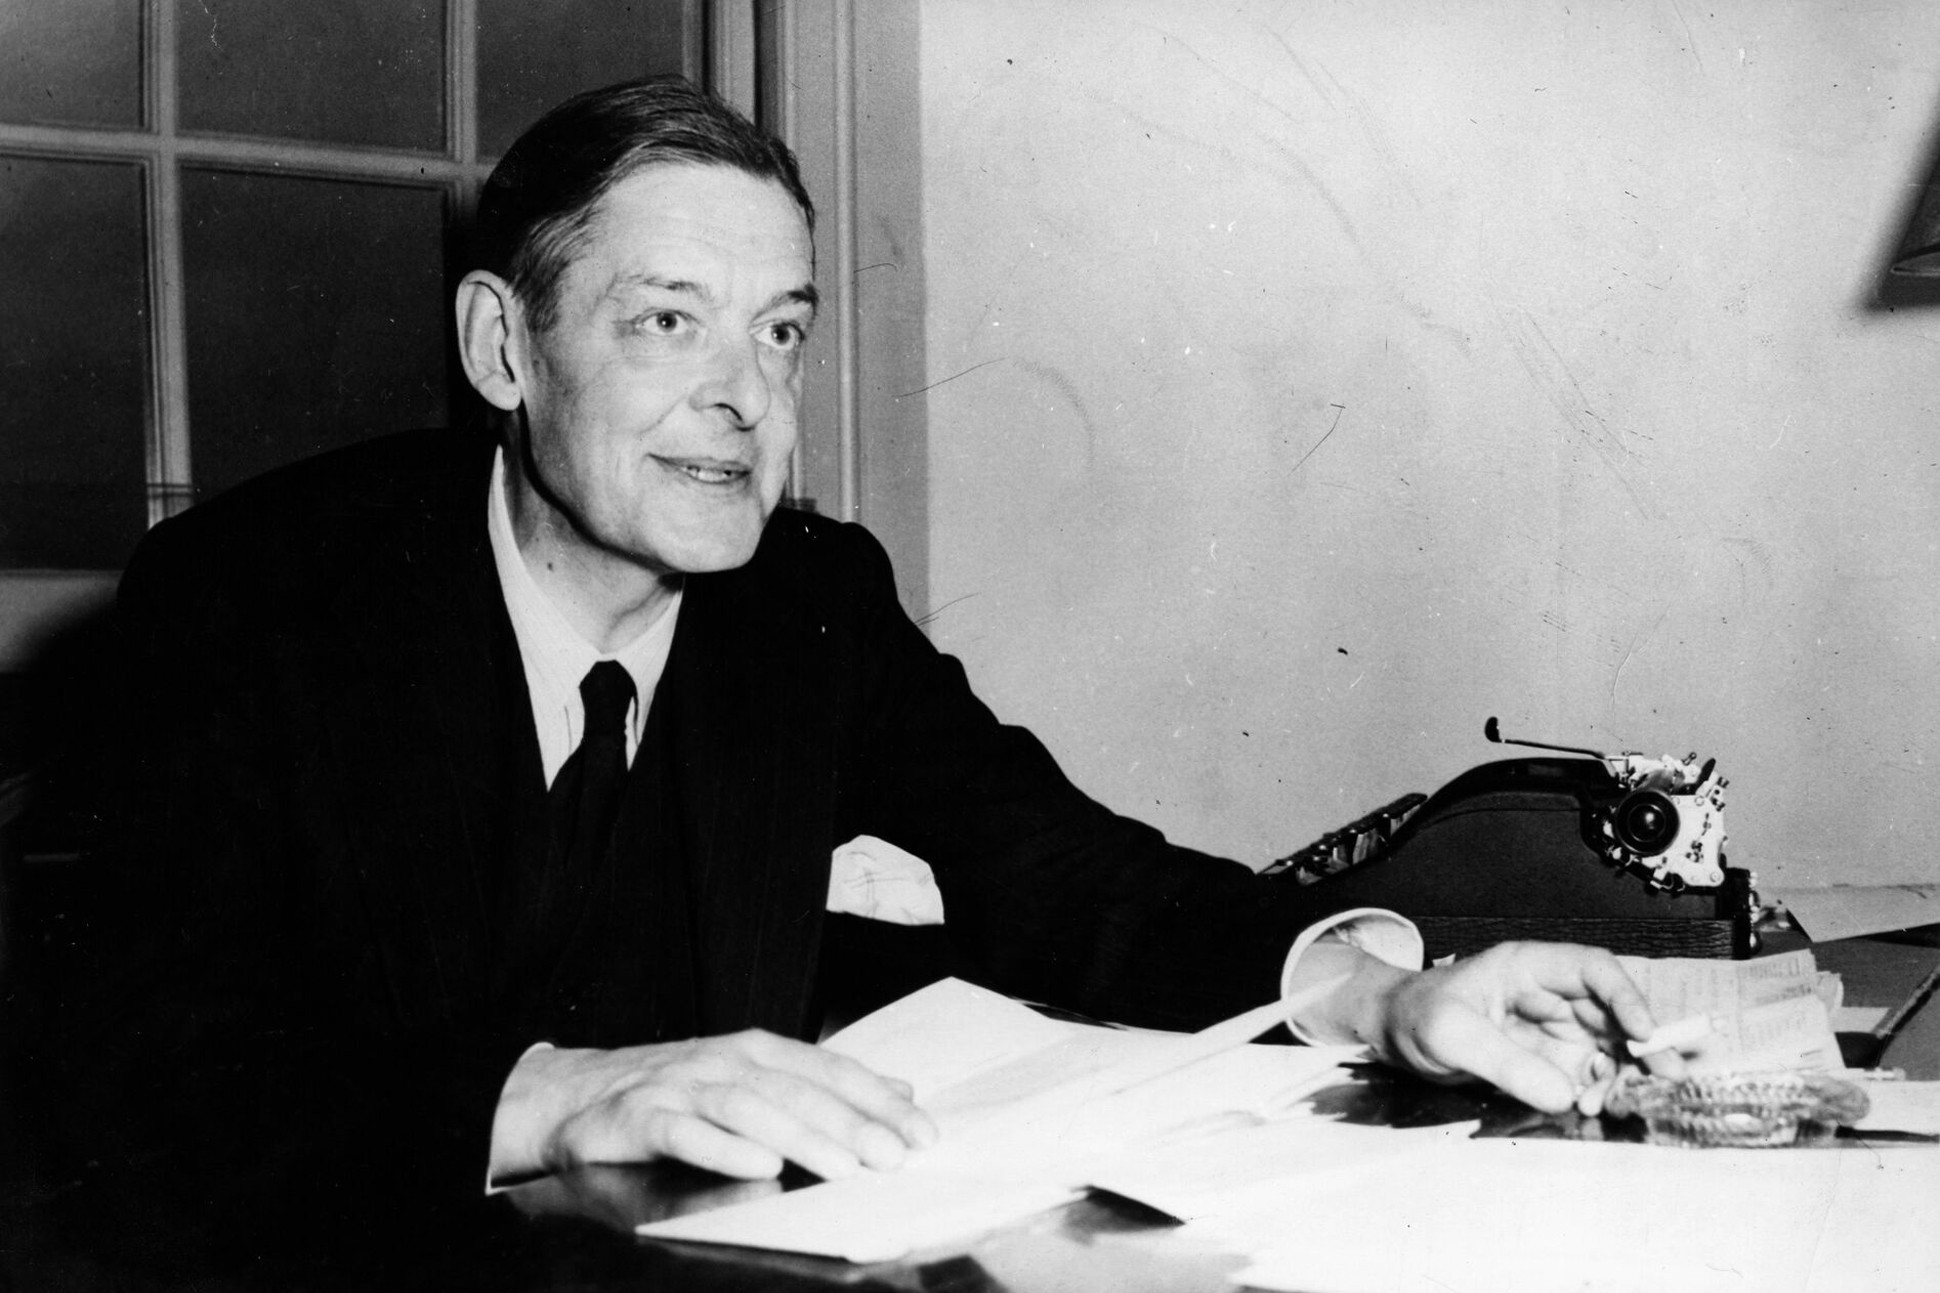 Black and white image of T.S. Eliot.